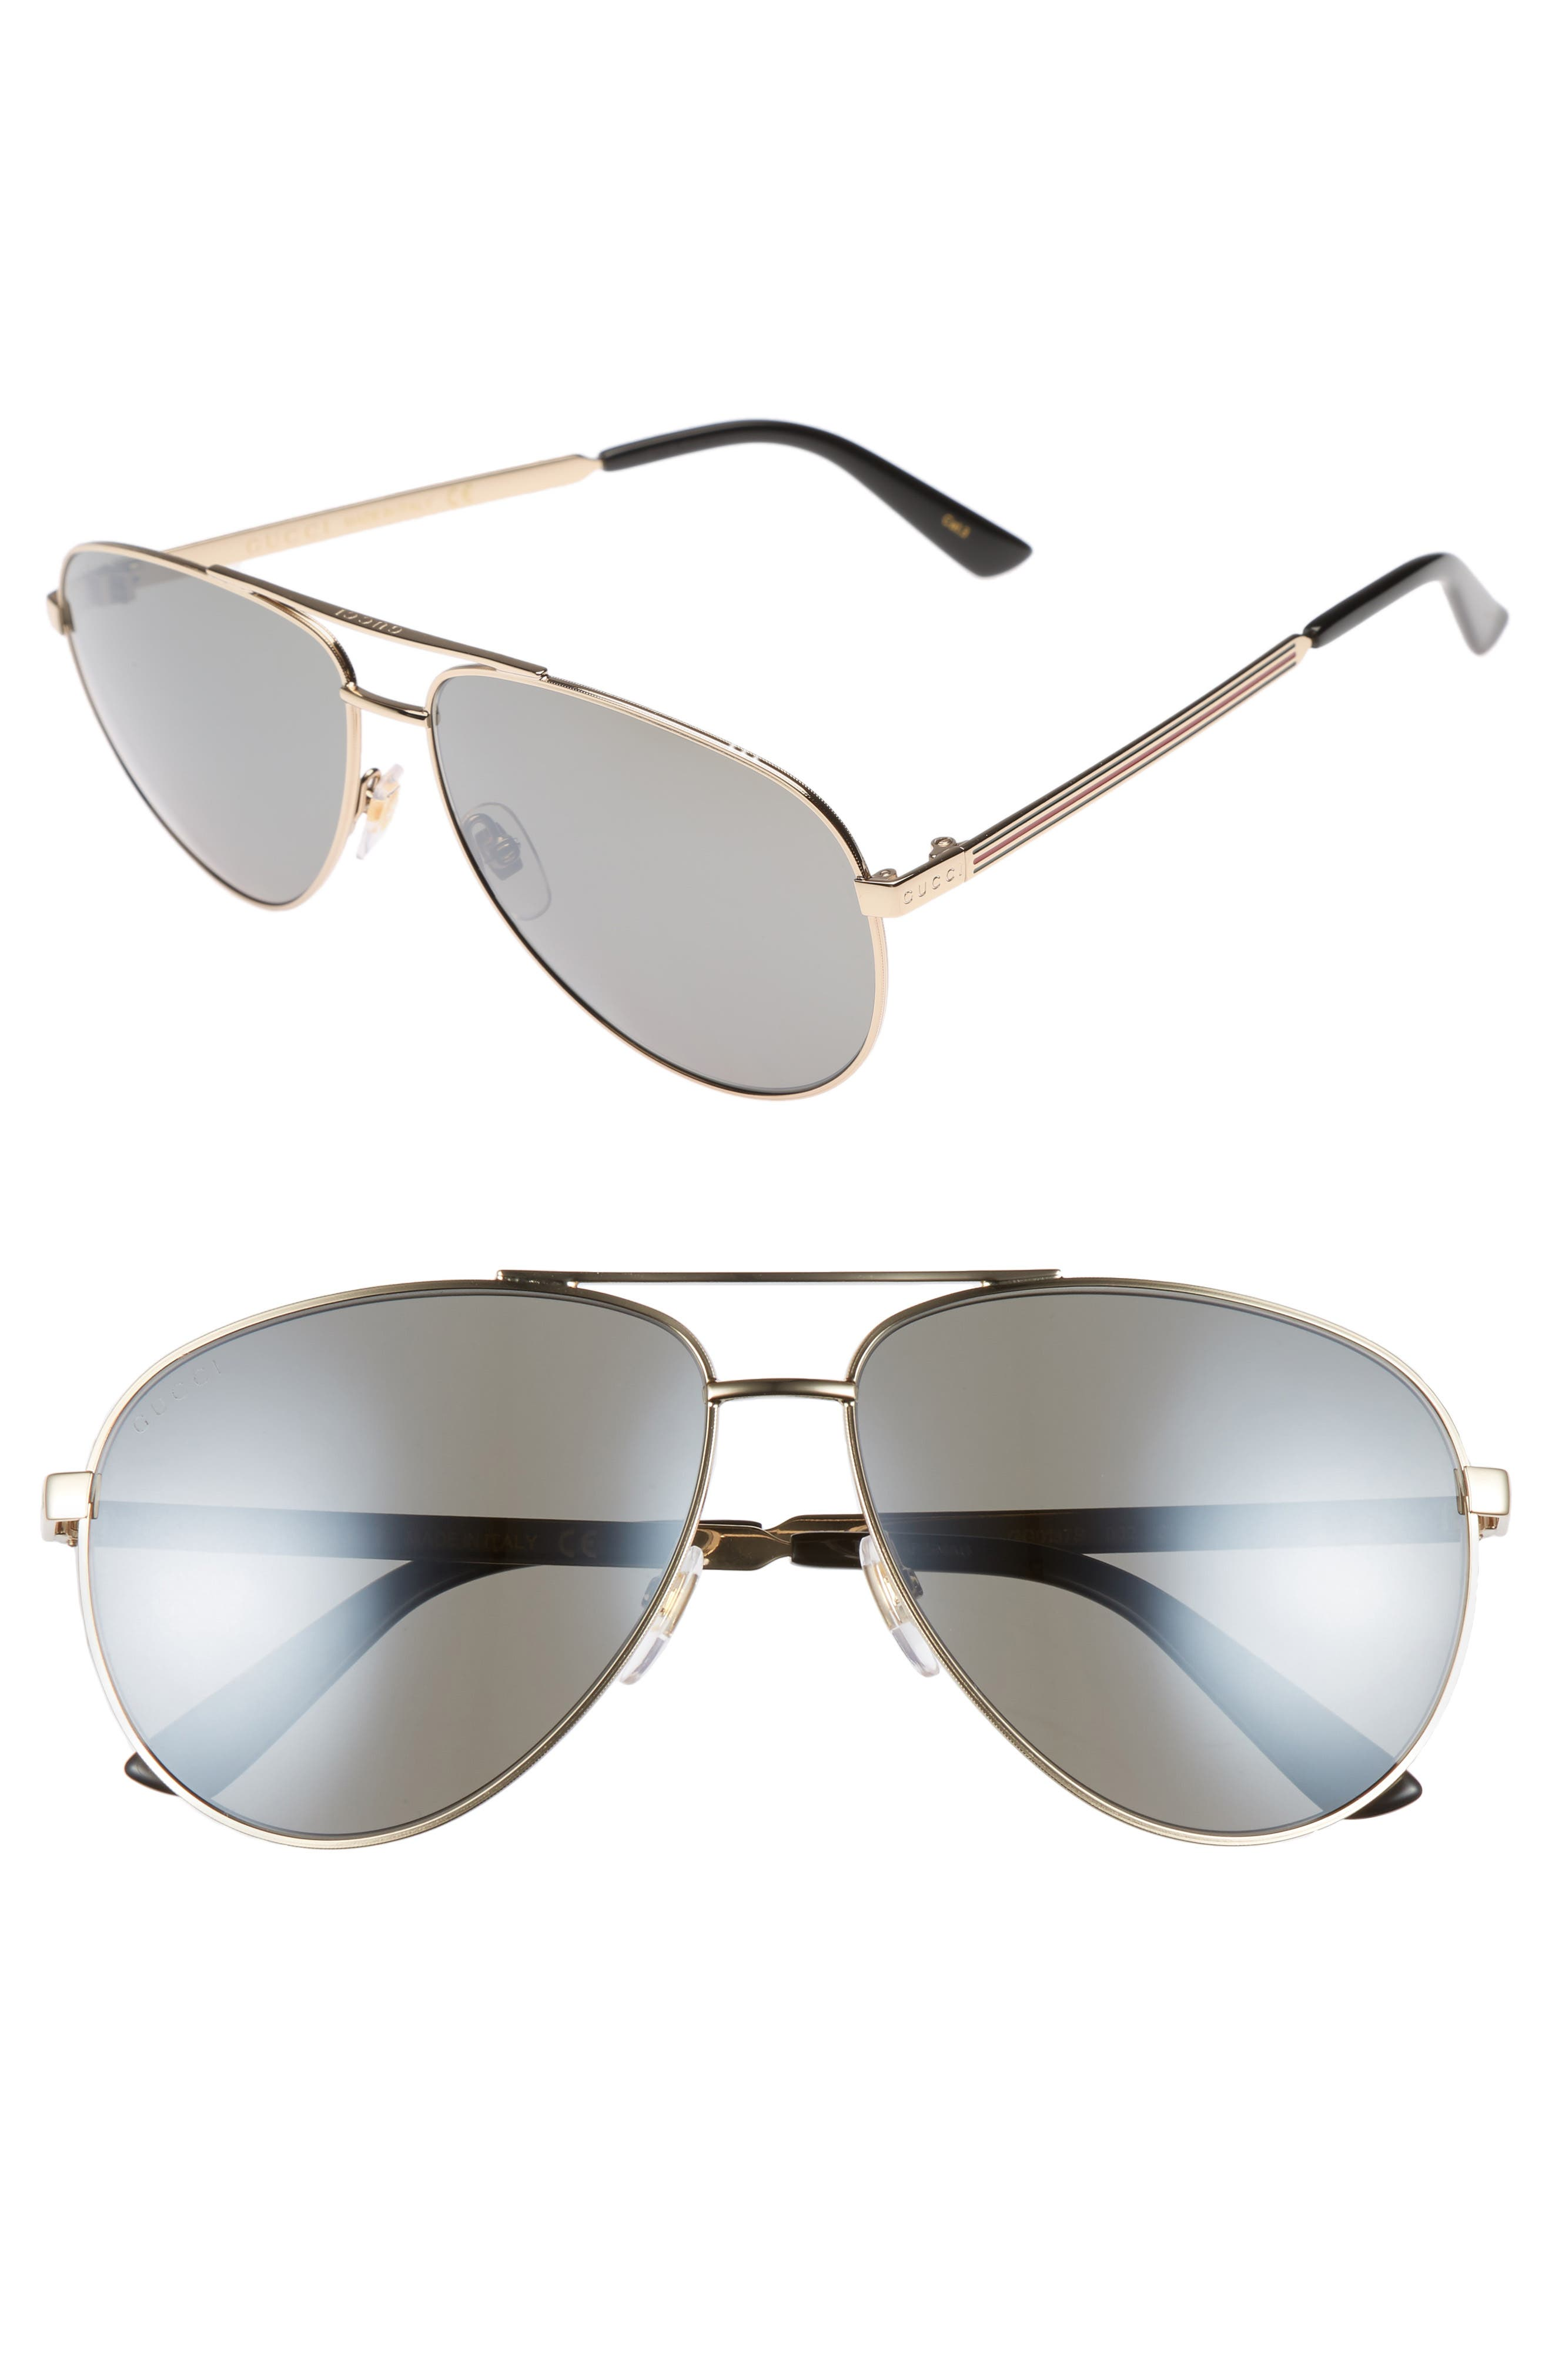 61mm Aviator Sunglasses,                         Main,                         color, Gold